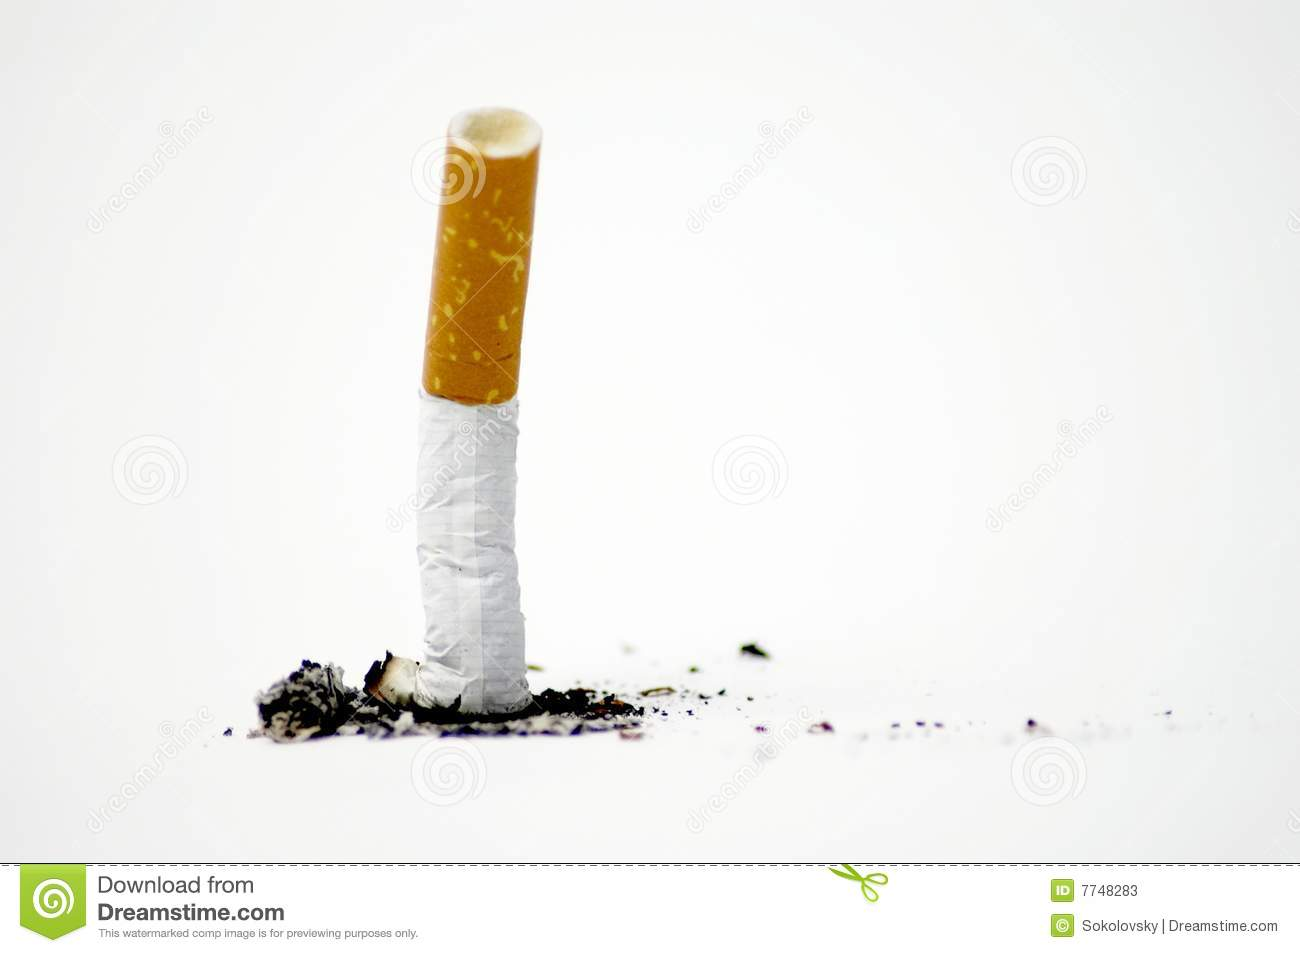 Cigarette on white - No smoking